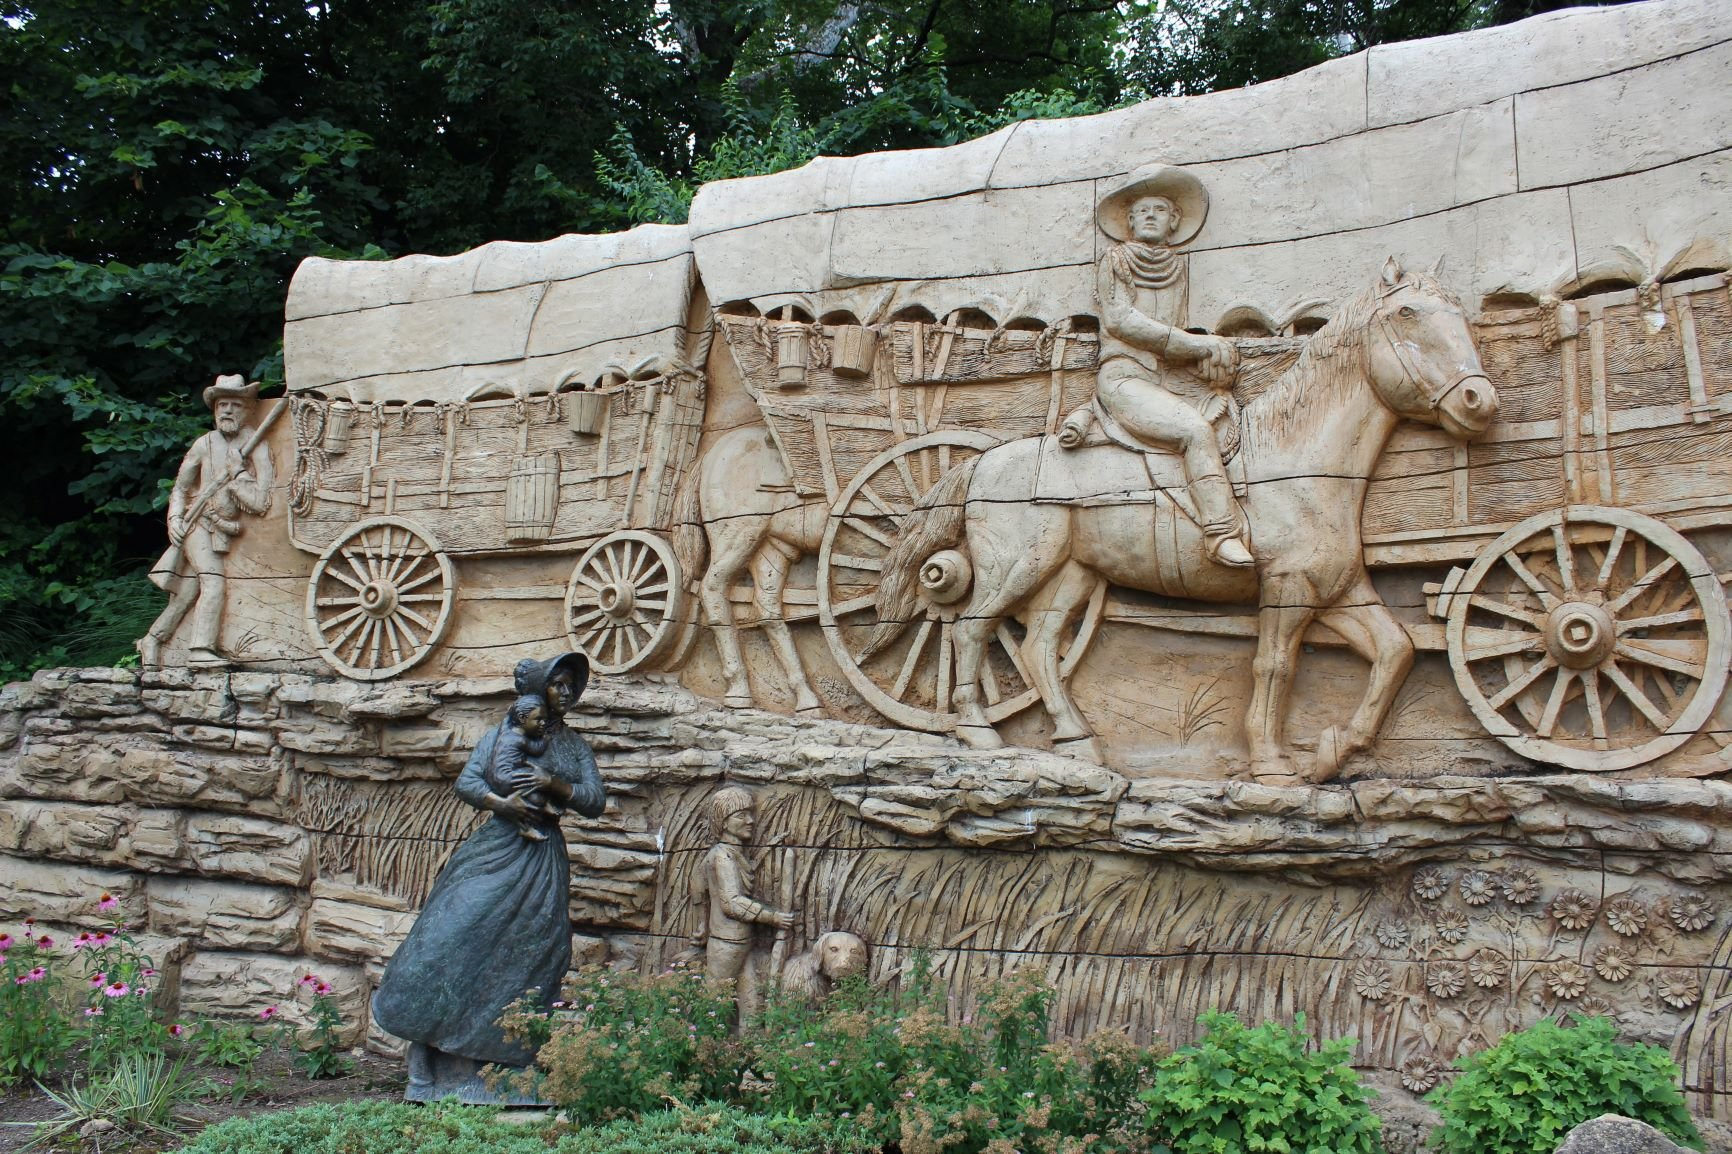 Detail of pioneer family in wagon train sculpture by Charles Goslin. Photo by Cynthia Prescott.